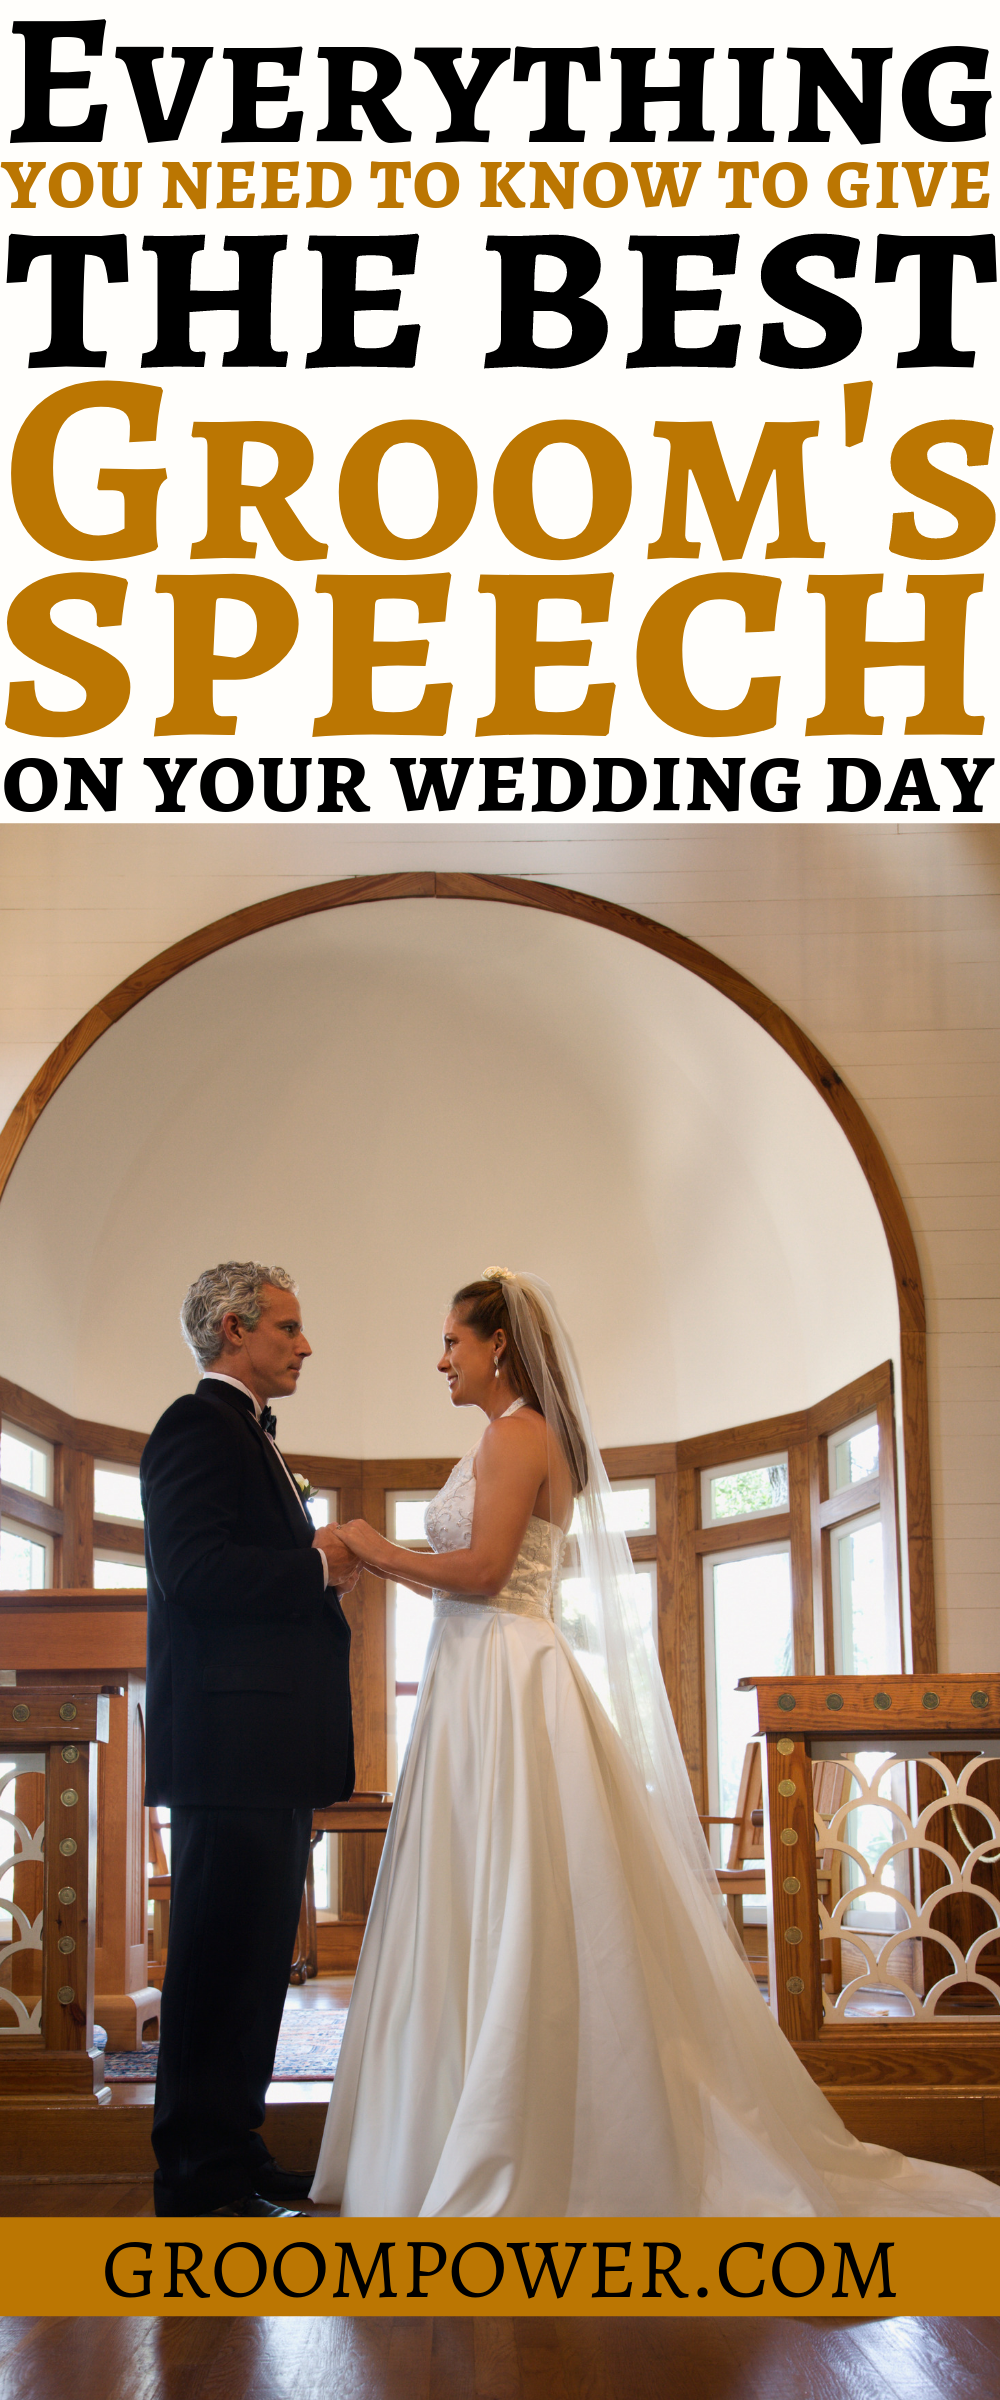 Wedding Speeches Who Speaks And In What Order Groom S Speech Wedding Speech Wedding Preparation